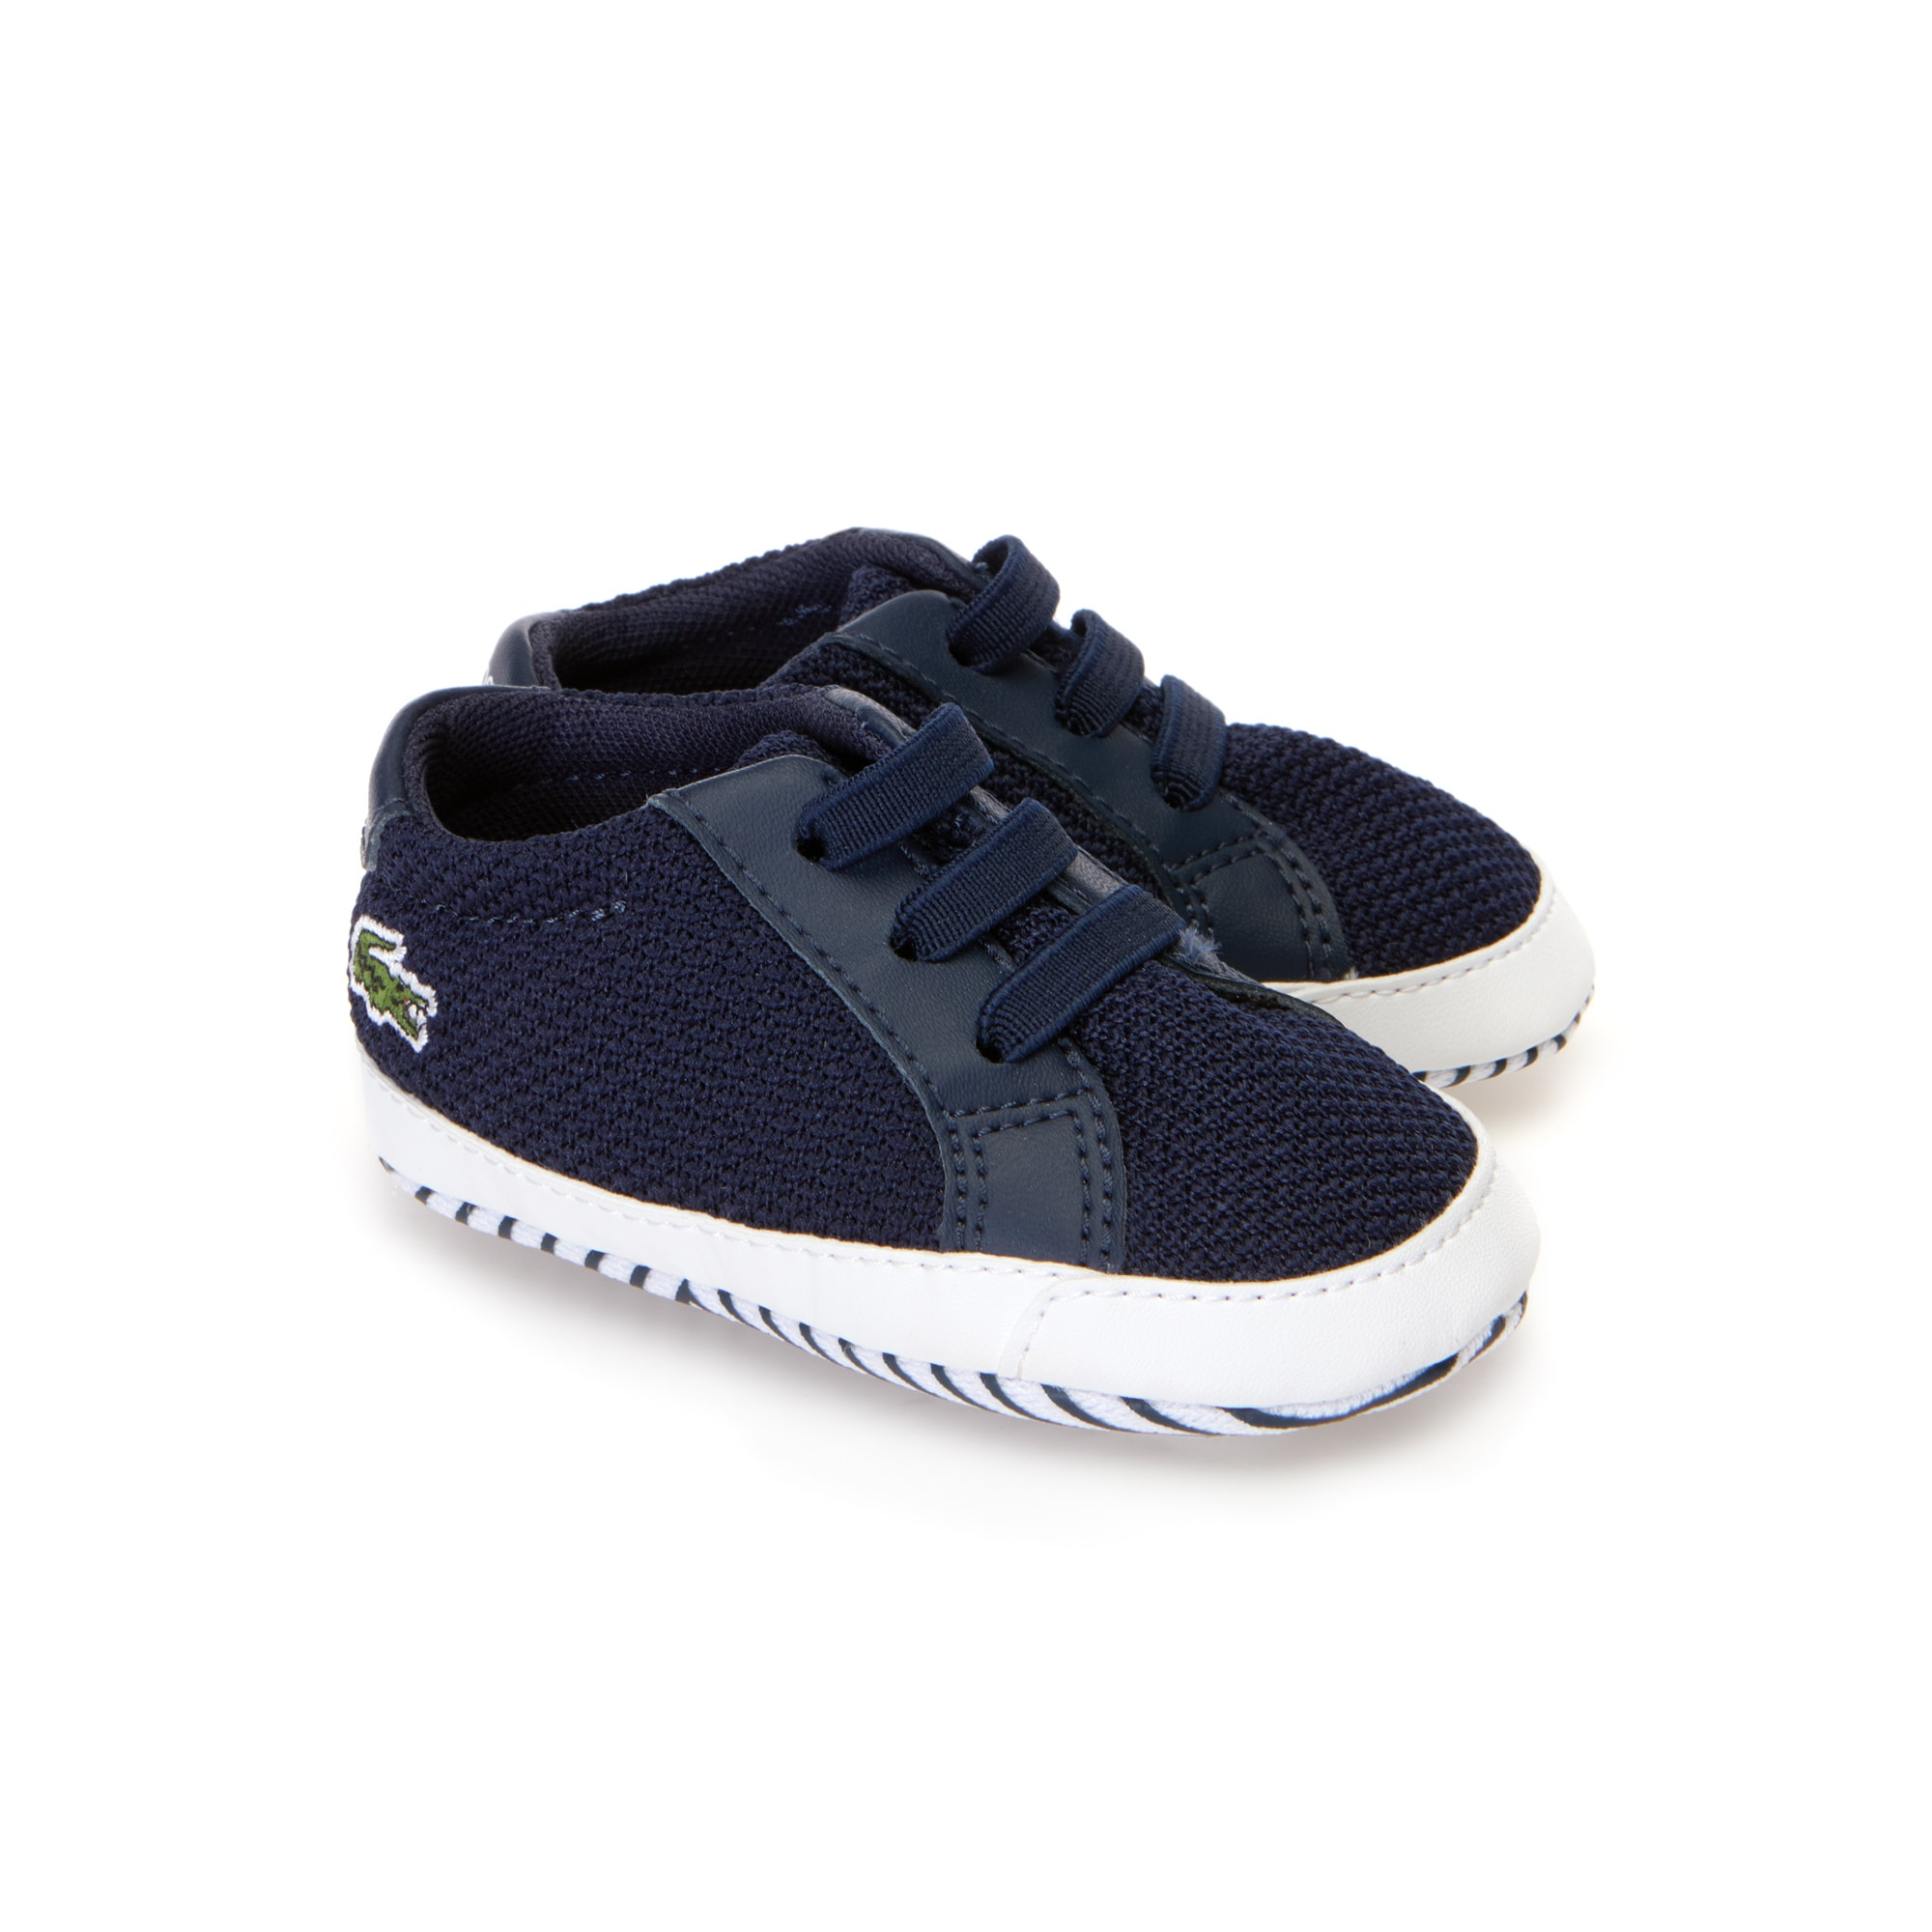 Infants' L.12.12 Crib Textile Trainers